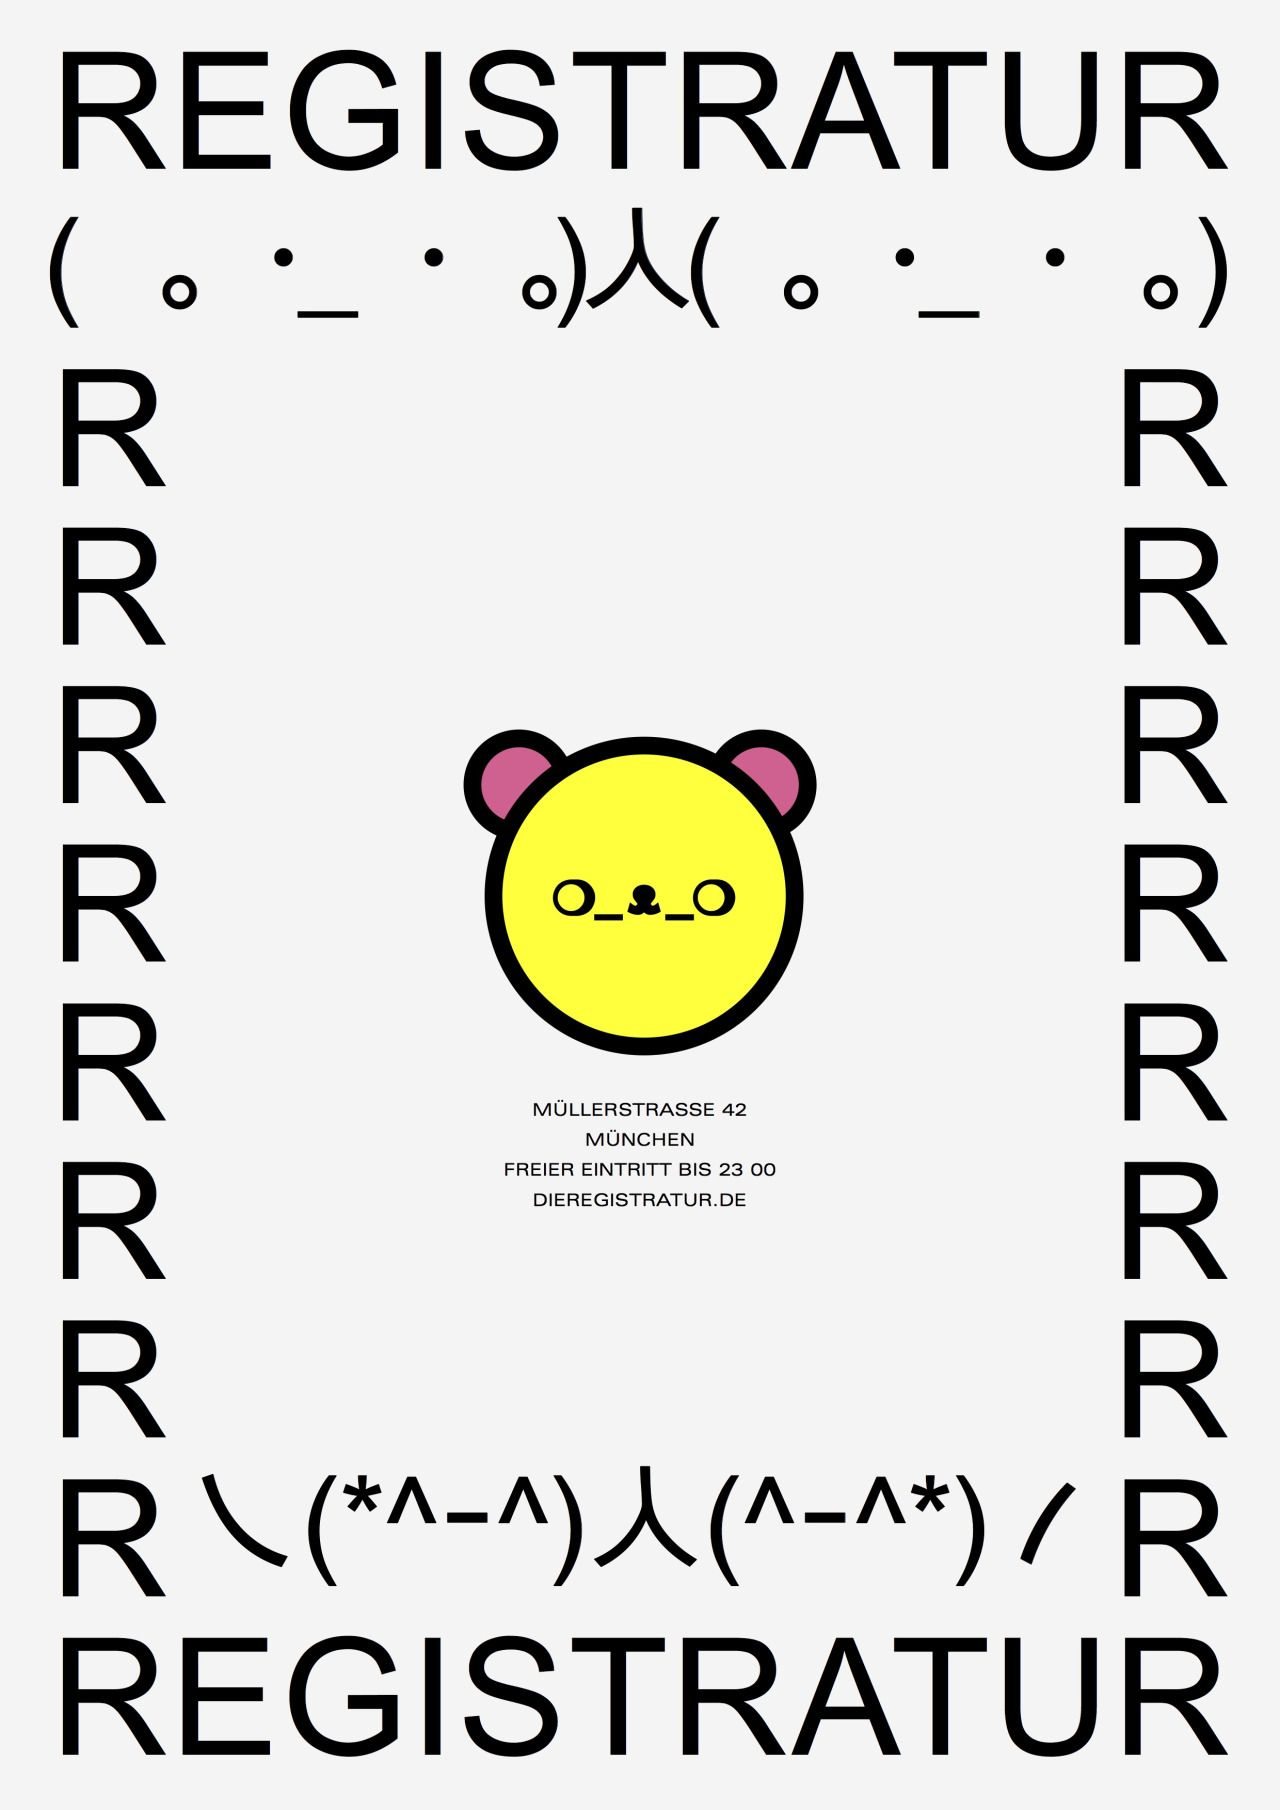 """ooooooooooffffffffffffffffffff: """"Unrealised poster series for ..."""